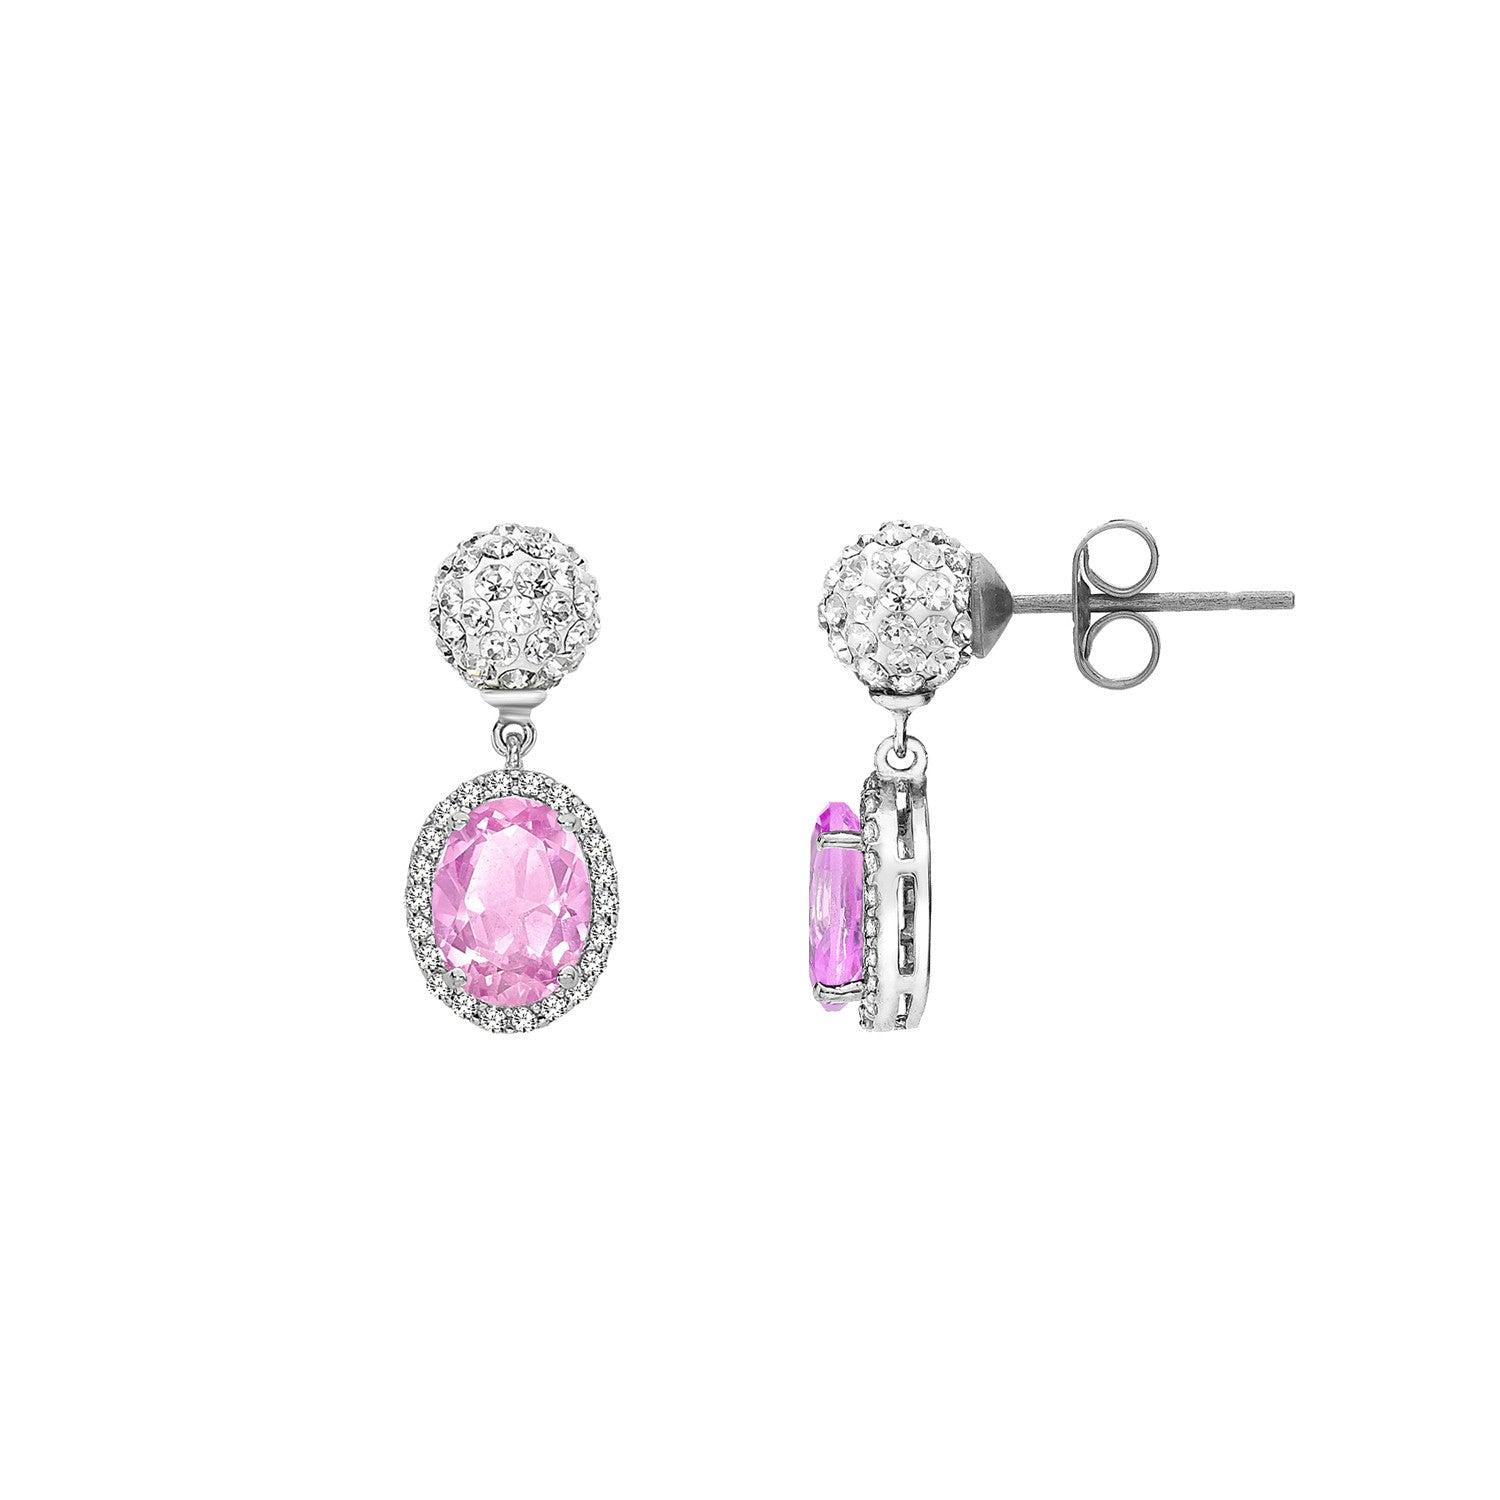 Tresor Paris Earrings Souverain Rose